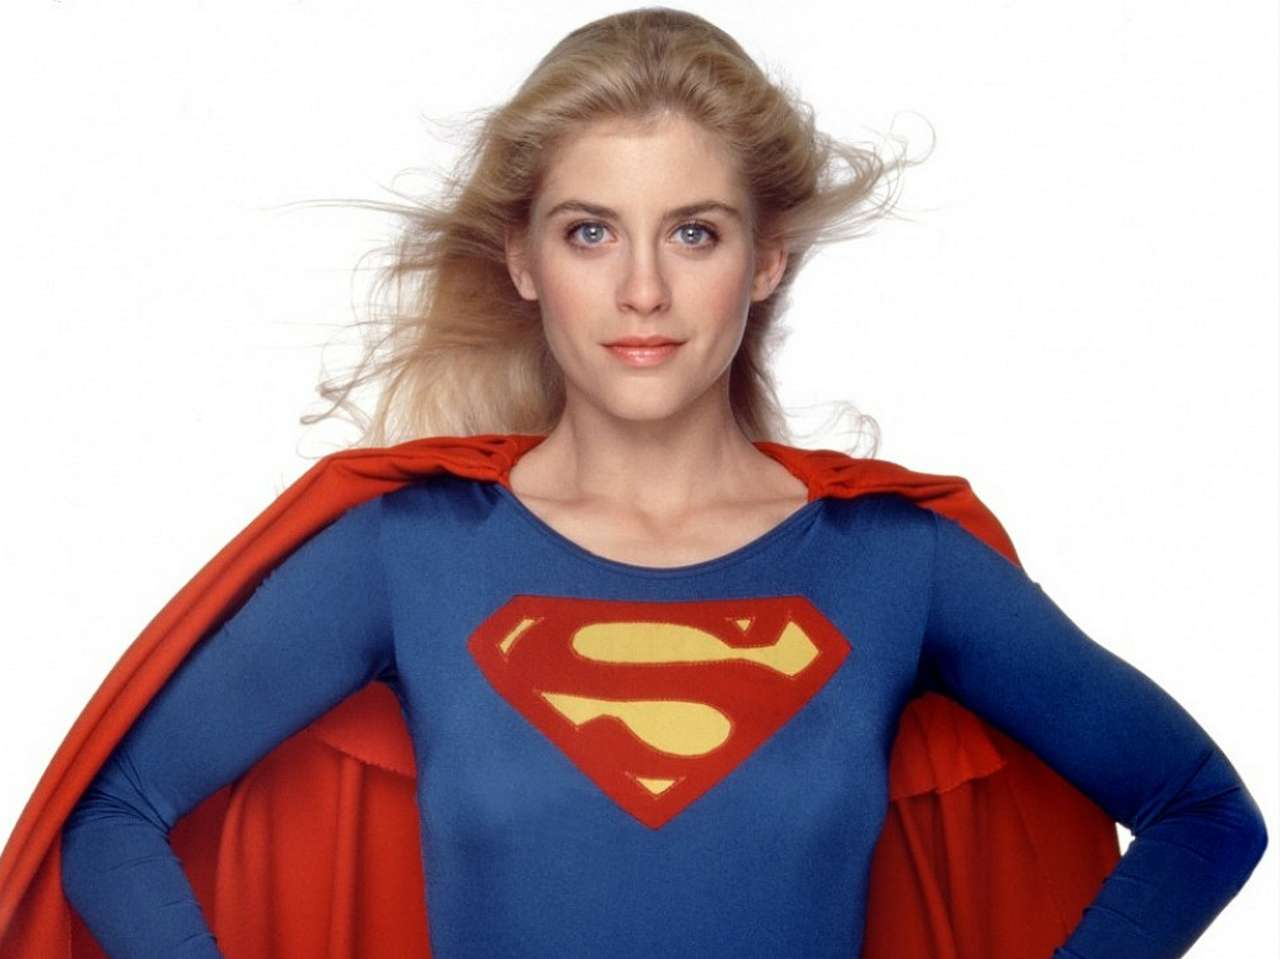 Supergirl. Foto: Telegraph.co.uk